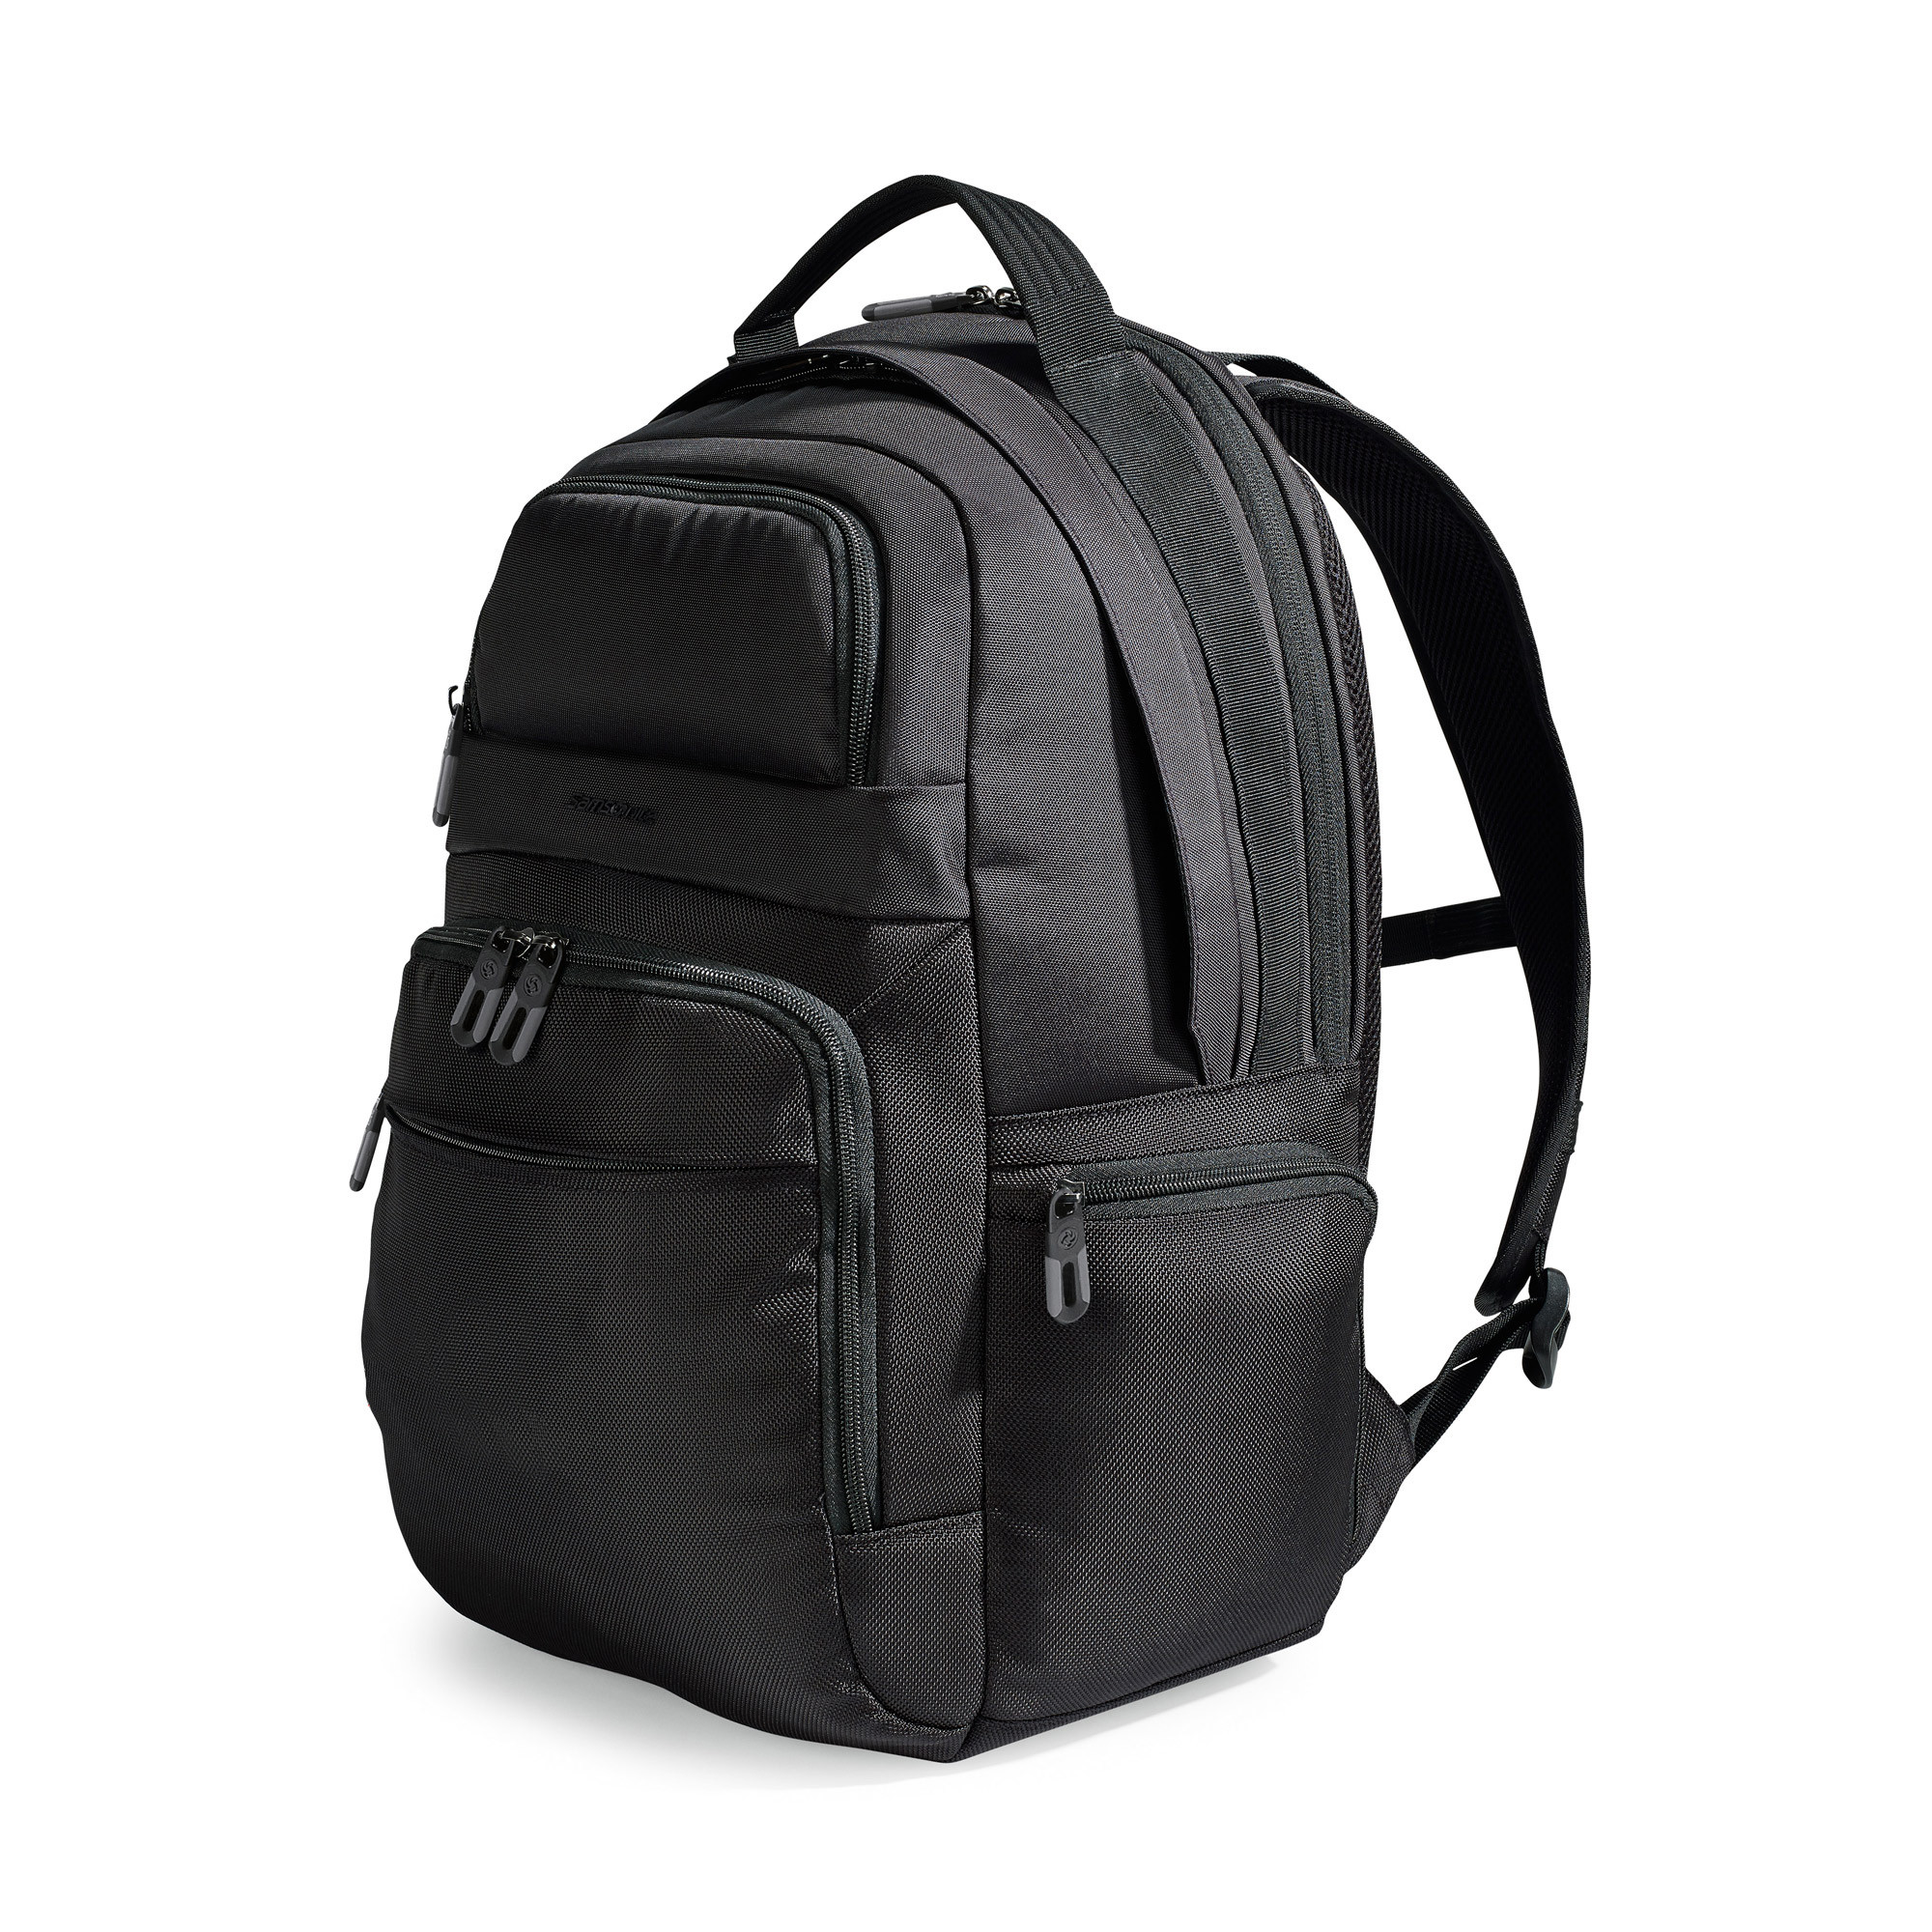 Samsonite 95074 - Road Warrior Computer Backpack